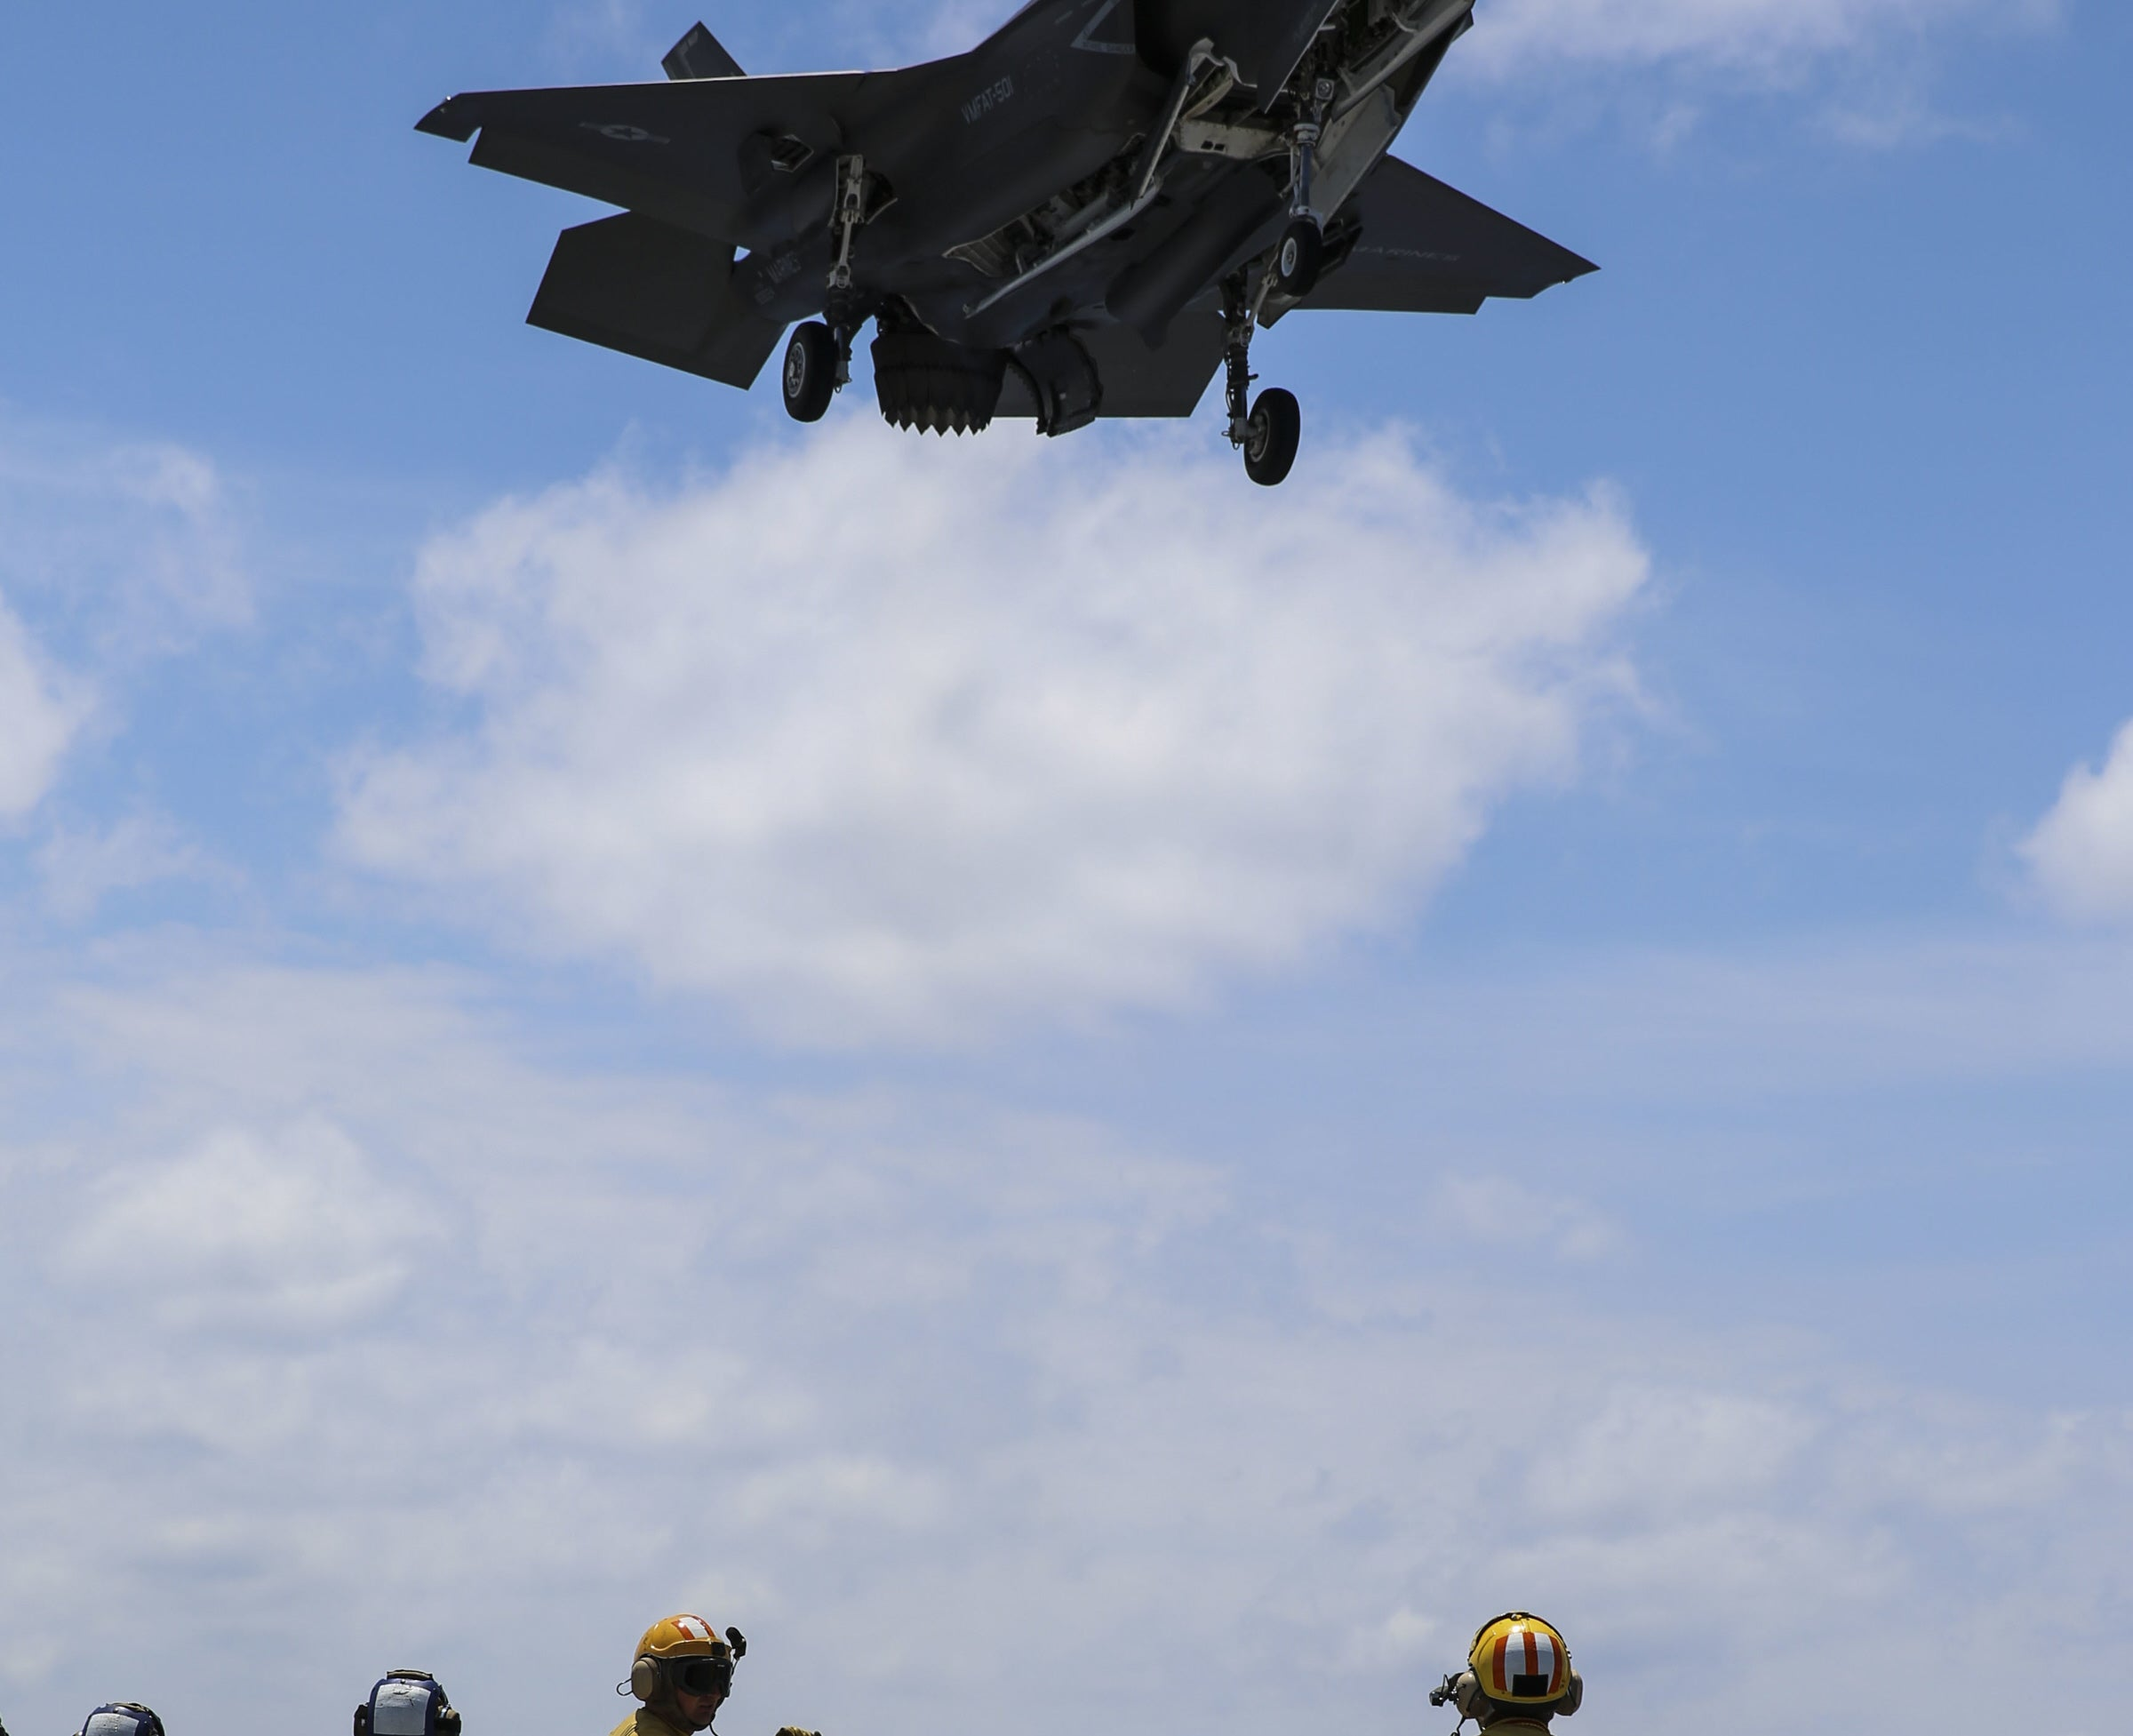 Watch The F-35B Hover To A Landing On A Ship